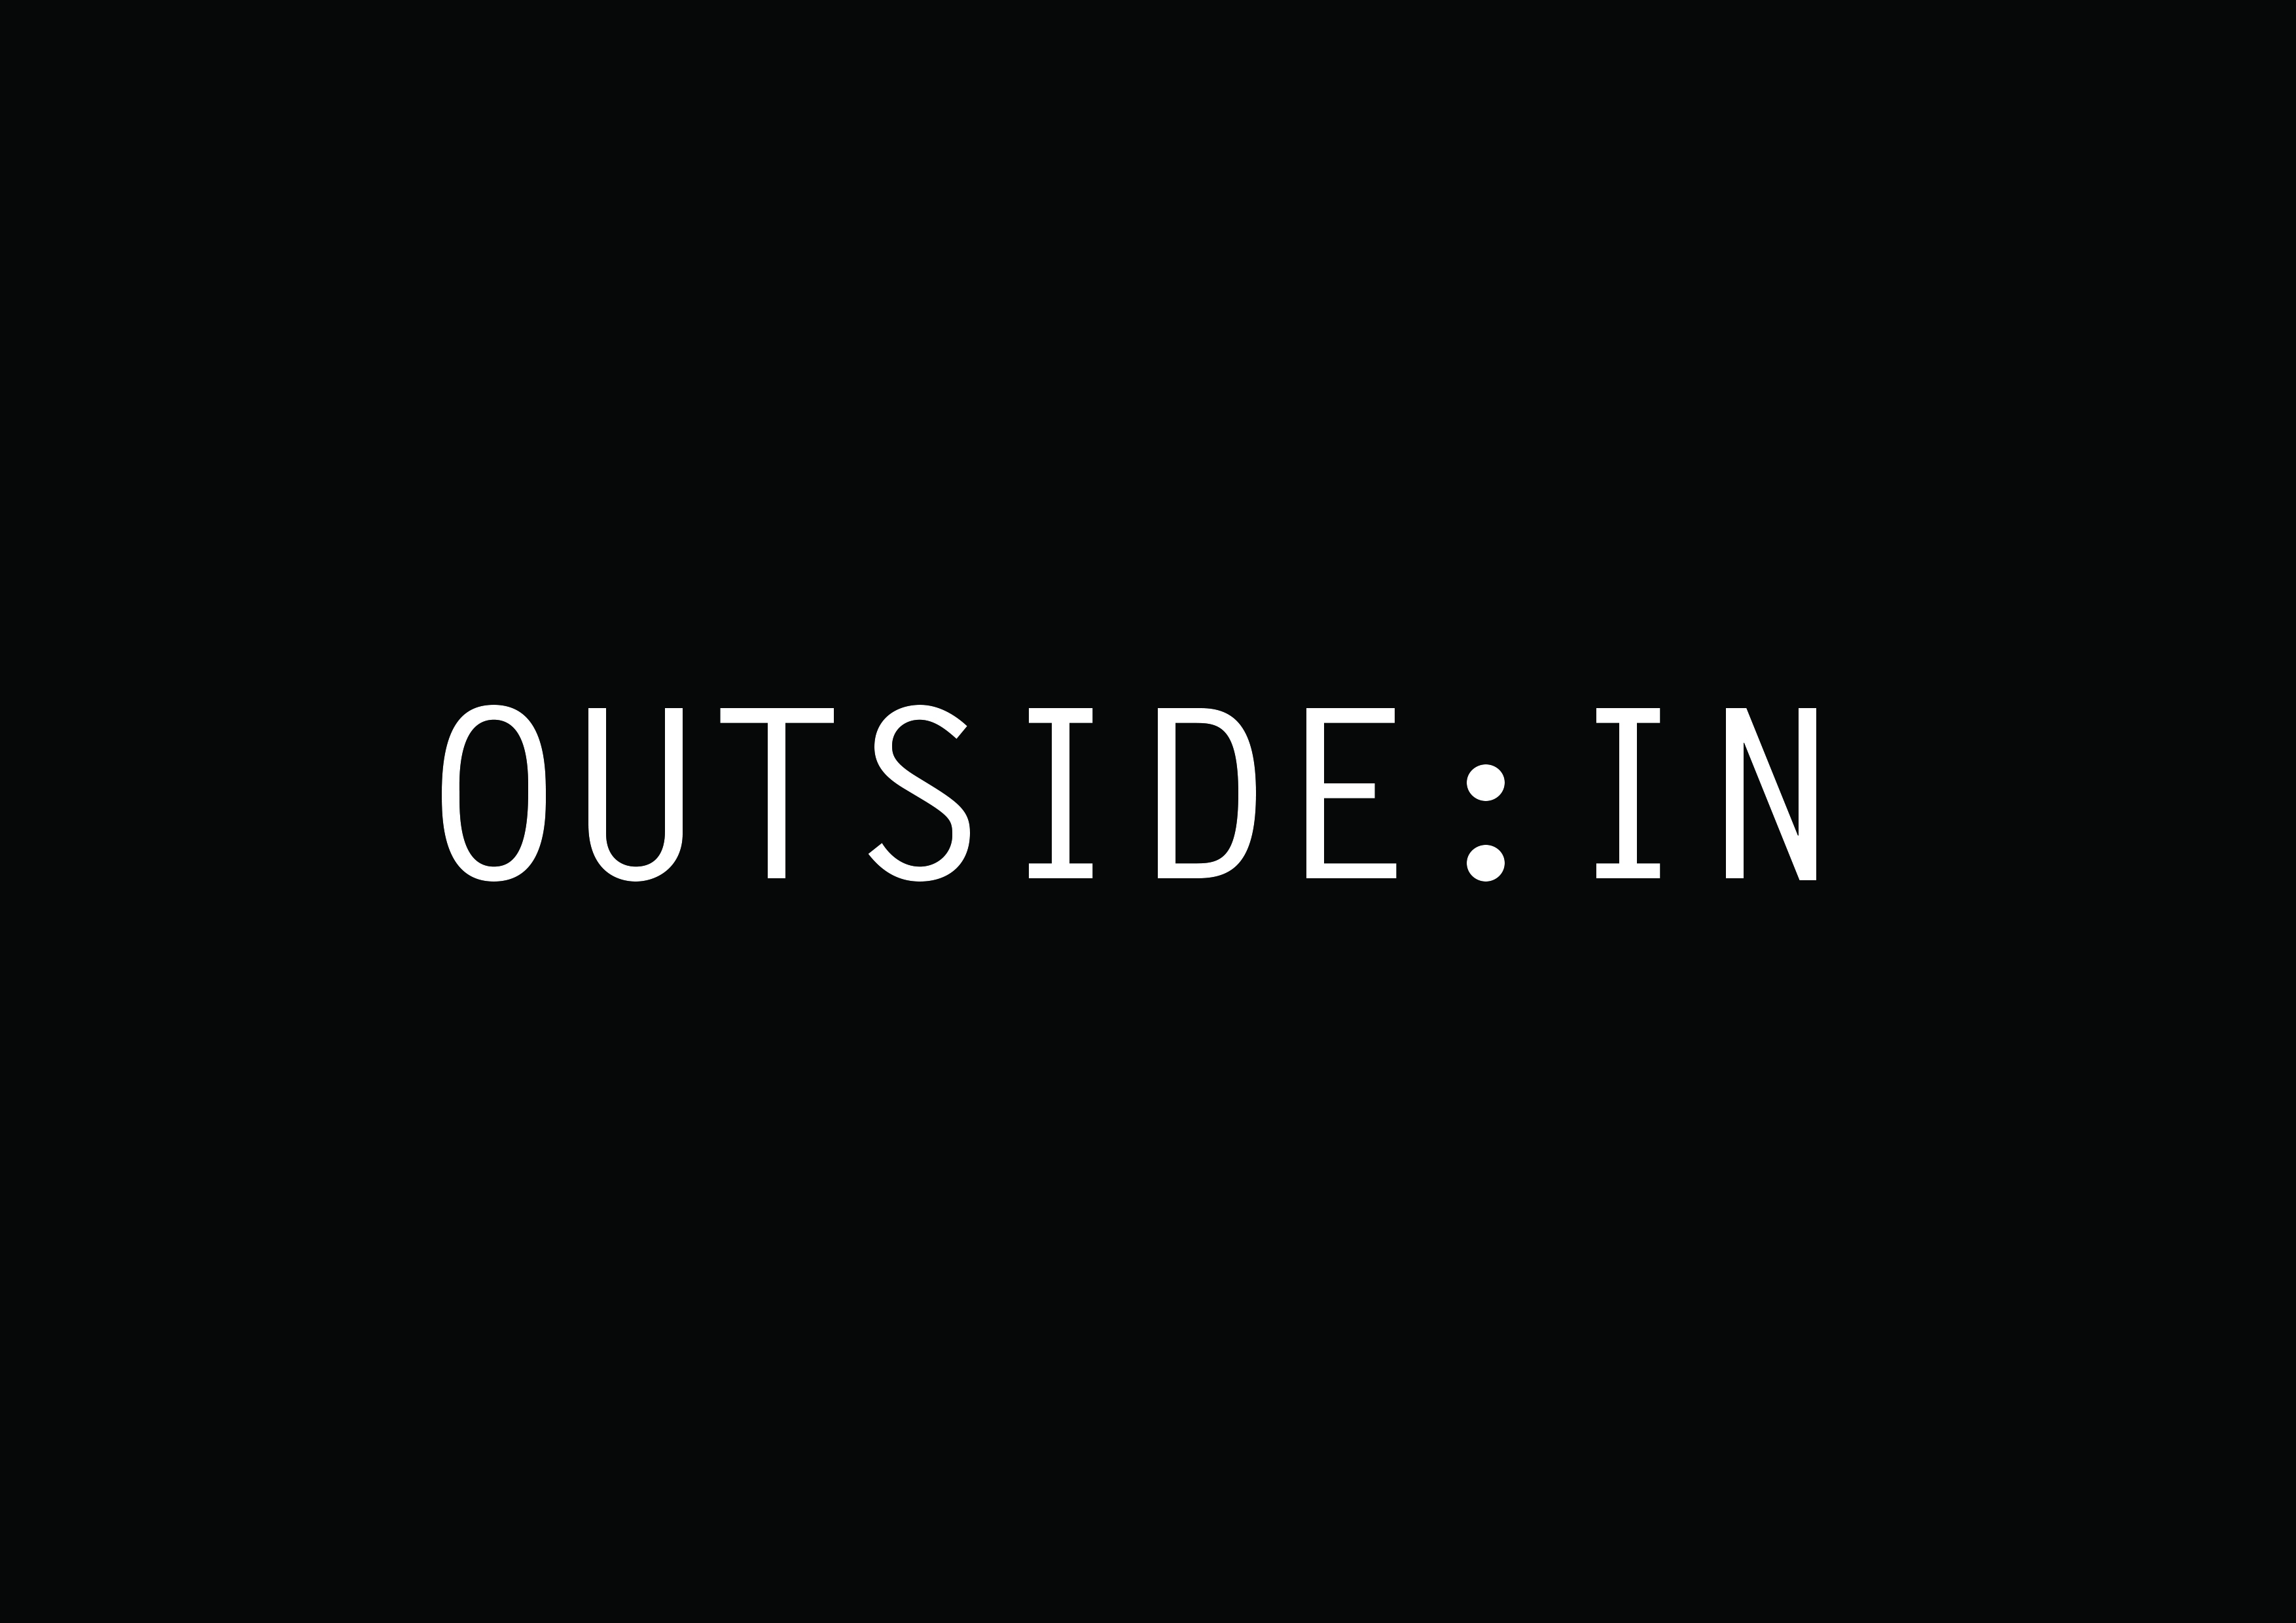 outside -in.jpg